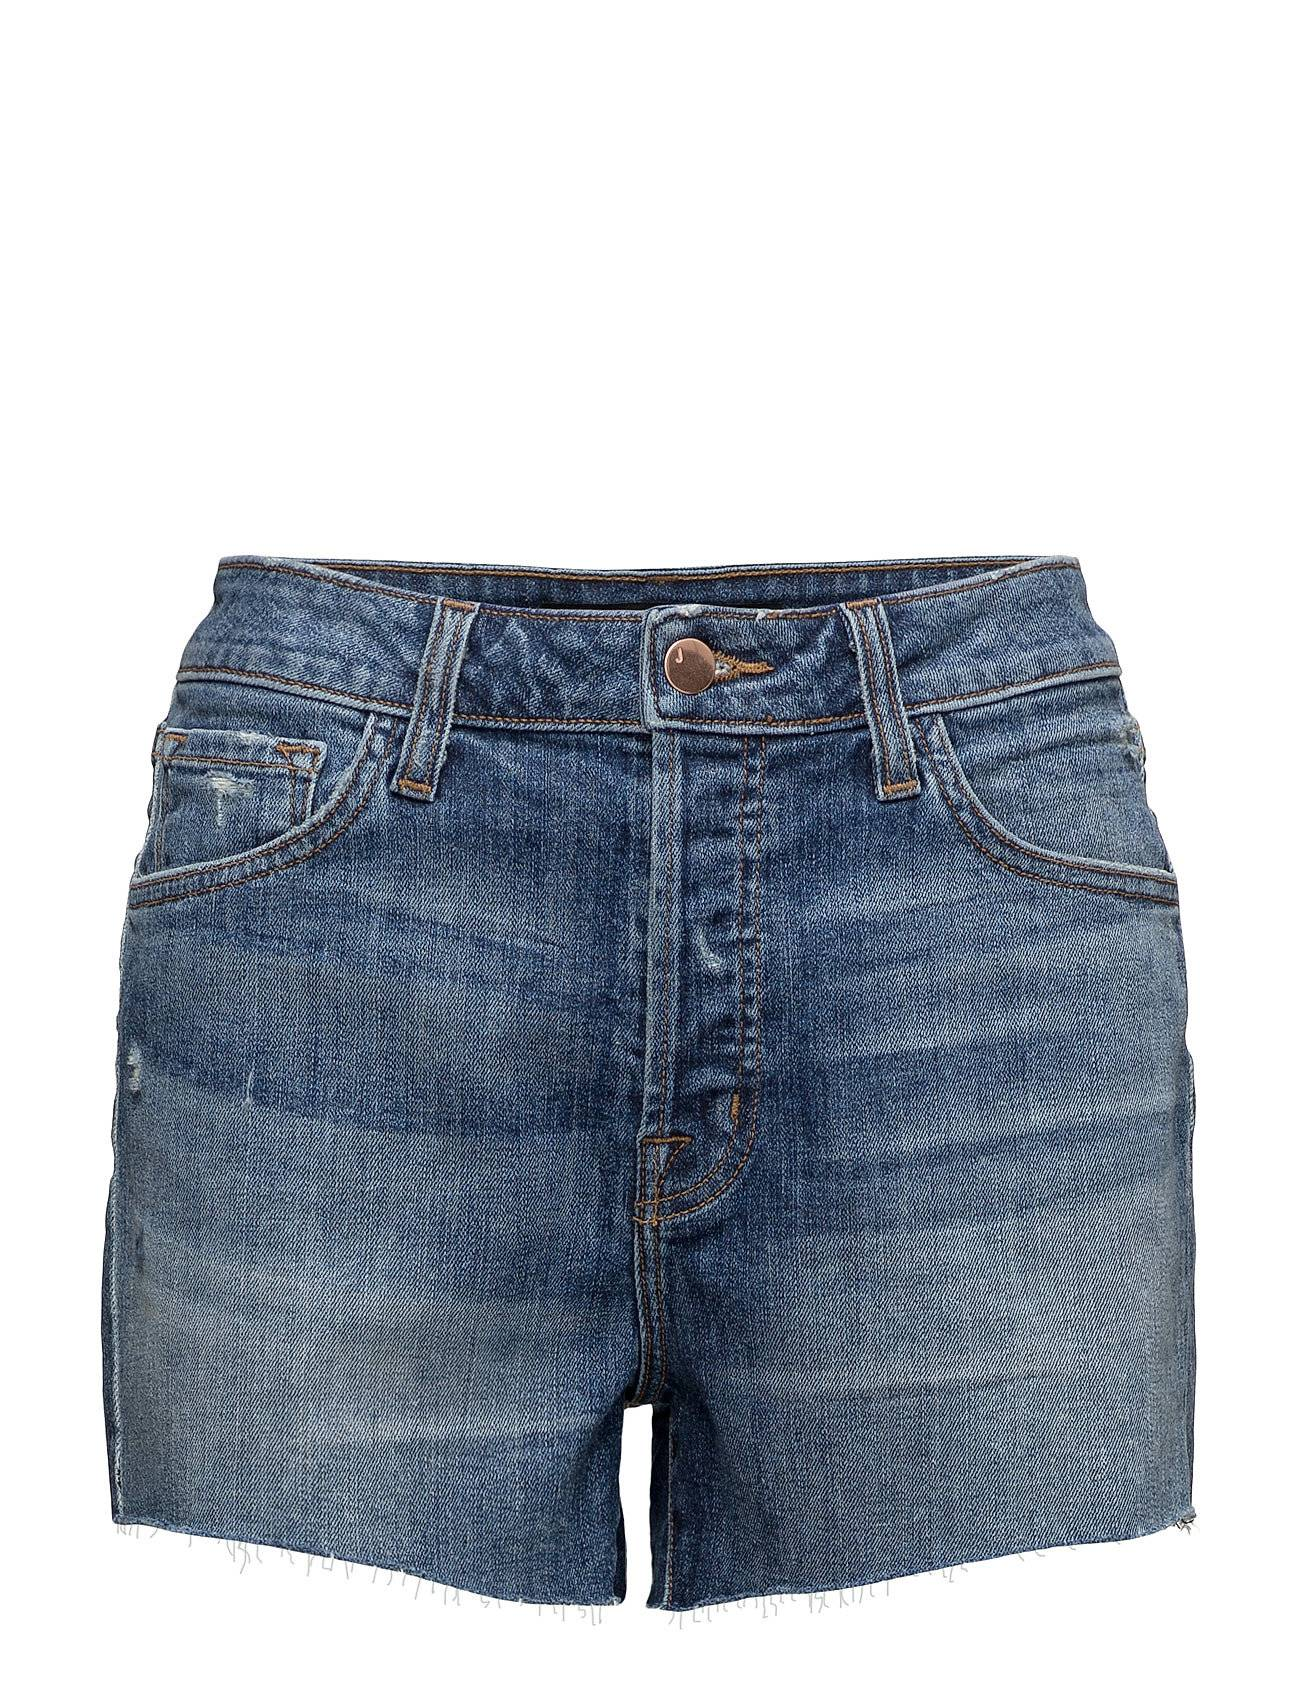 J brand T155raw Gracie High Rise Short